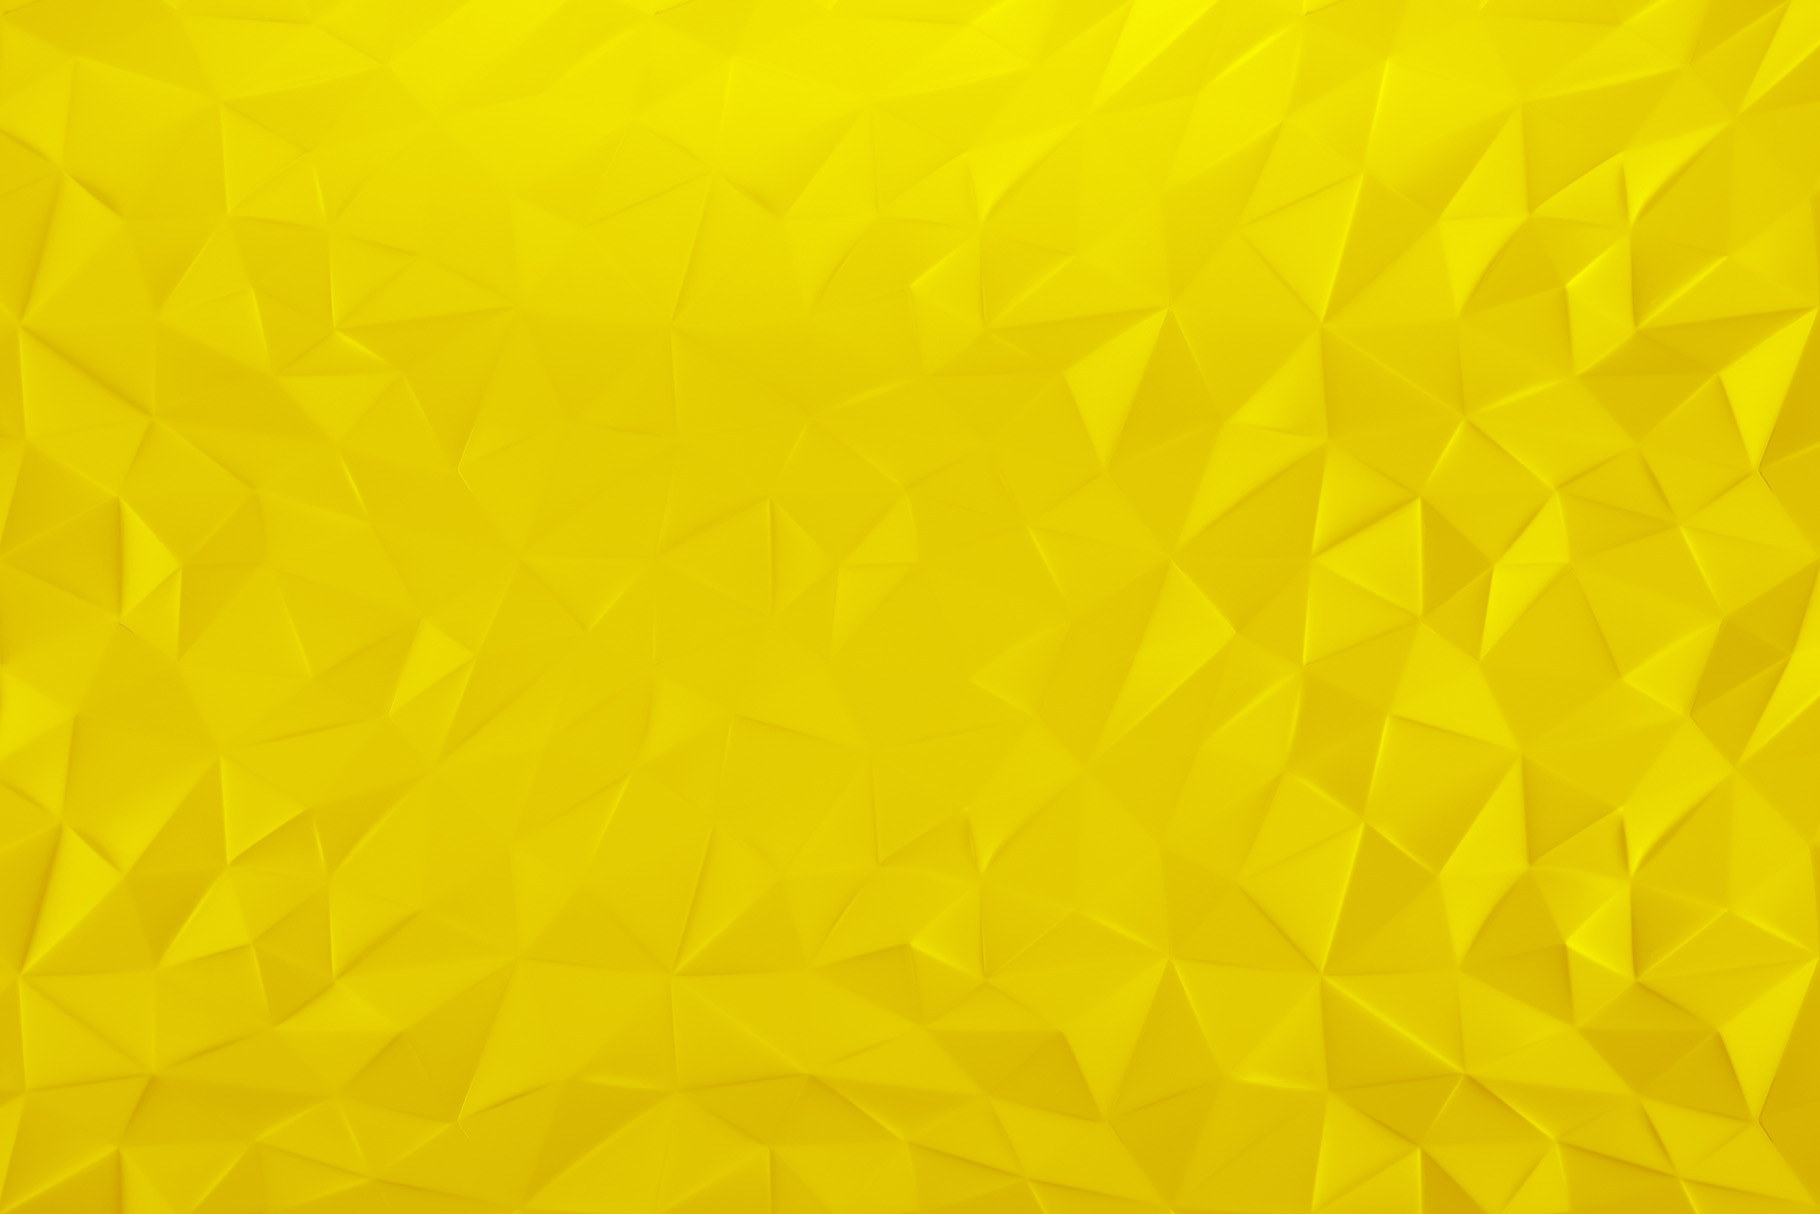 Abstract Backgrounds Volume 1 example image 11